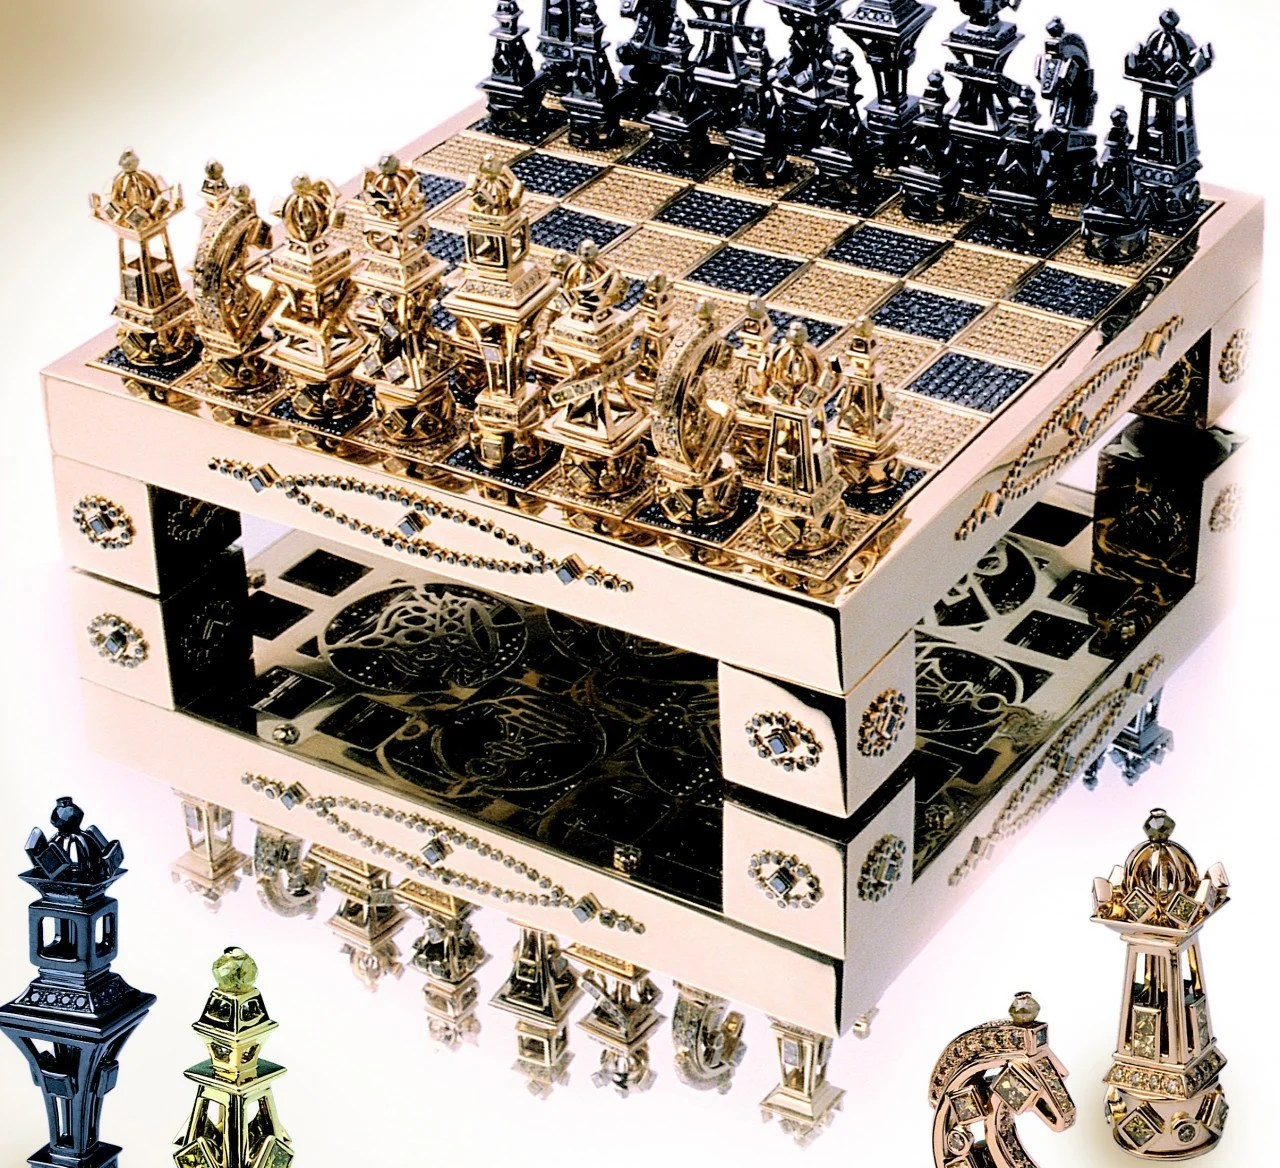 Fancy Chess Set Fancy A Solid Gold Diamond Encrusted Chess Set For 370 000